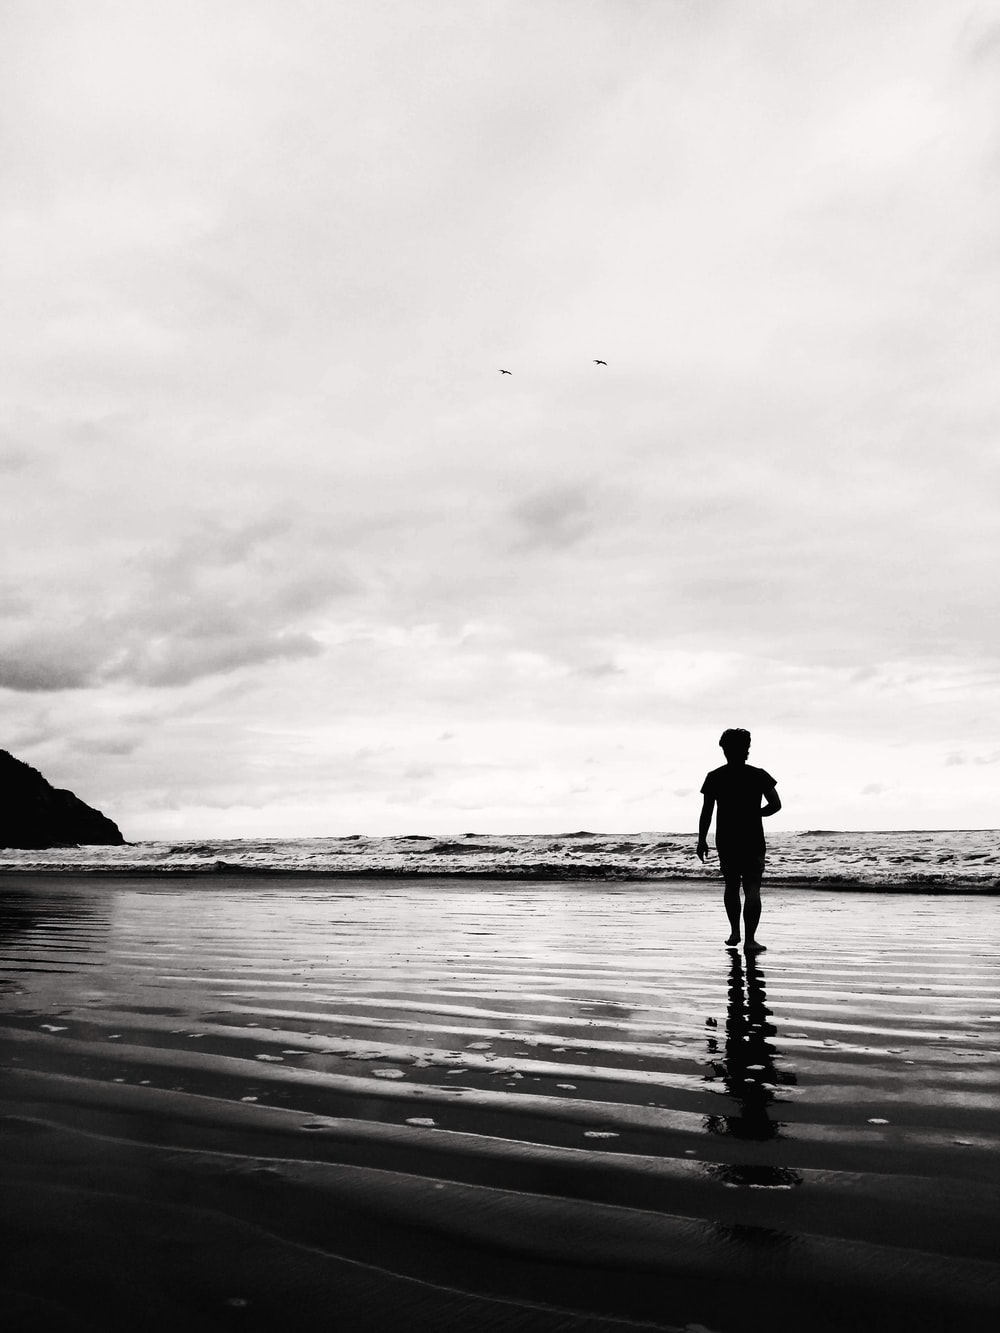 grayscale photo of man on shore